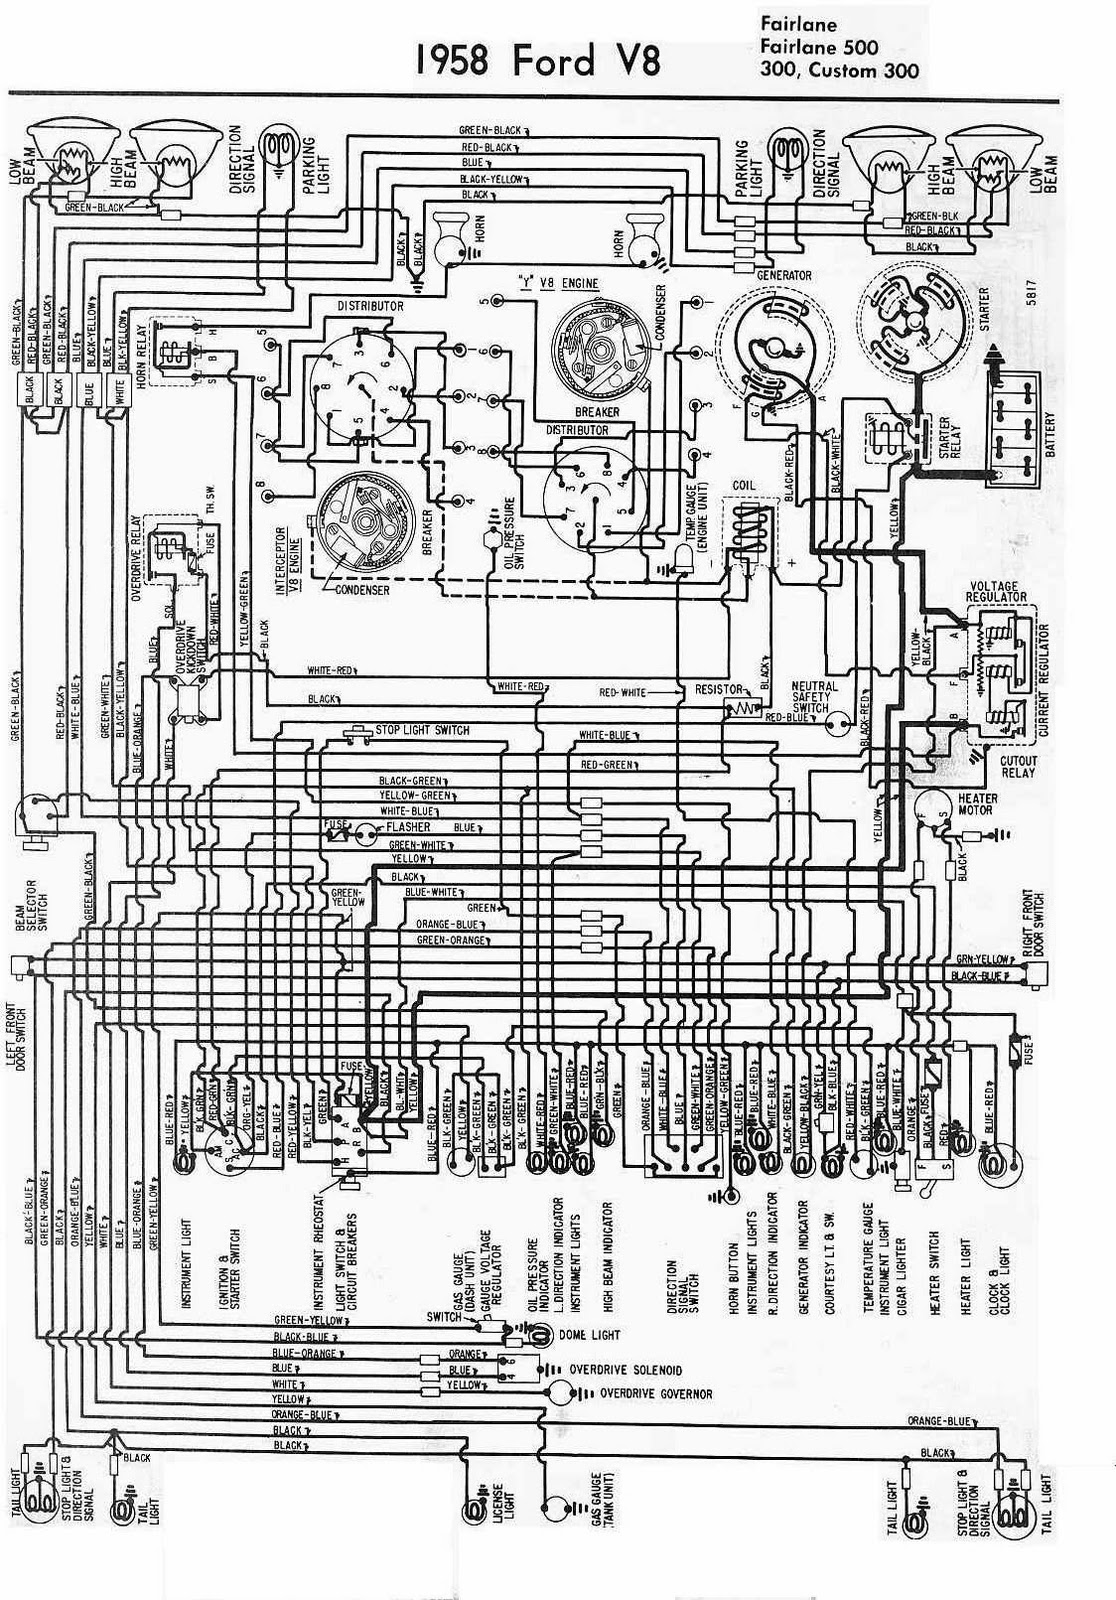 1970 F250 Wiring Diagram Worksheet And 1973 Ford Maverick 1974 Ltd Pictures U2022 Rh Mapavick Co Uk